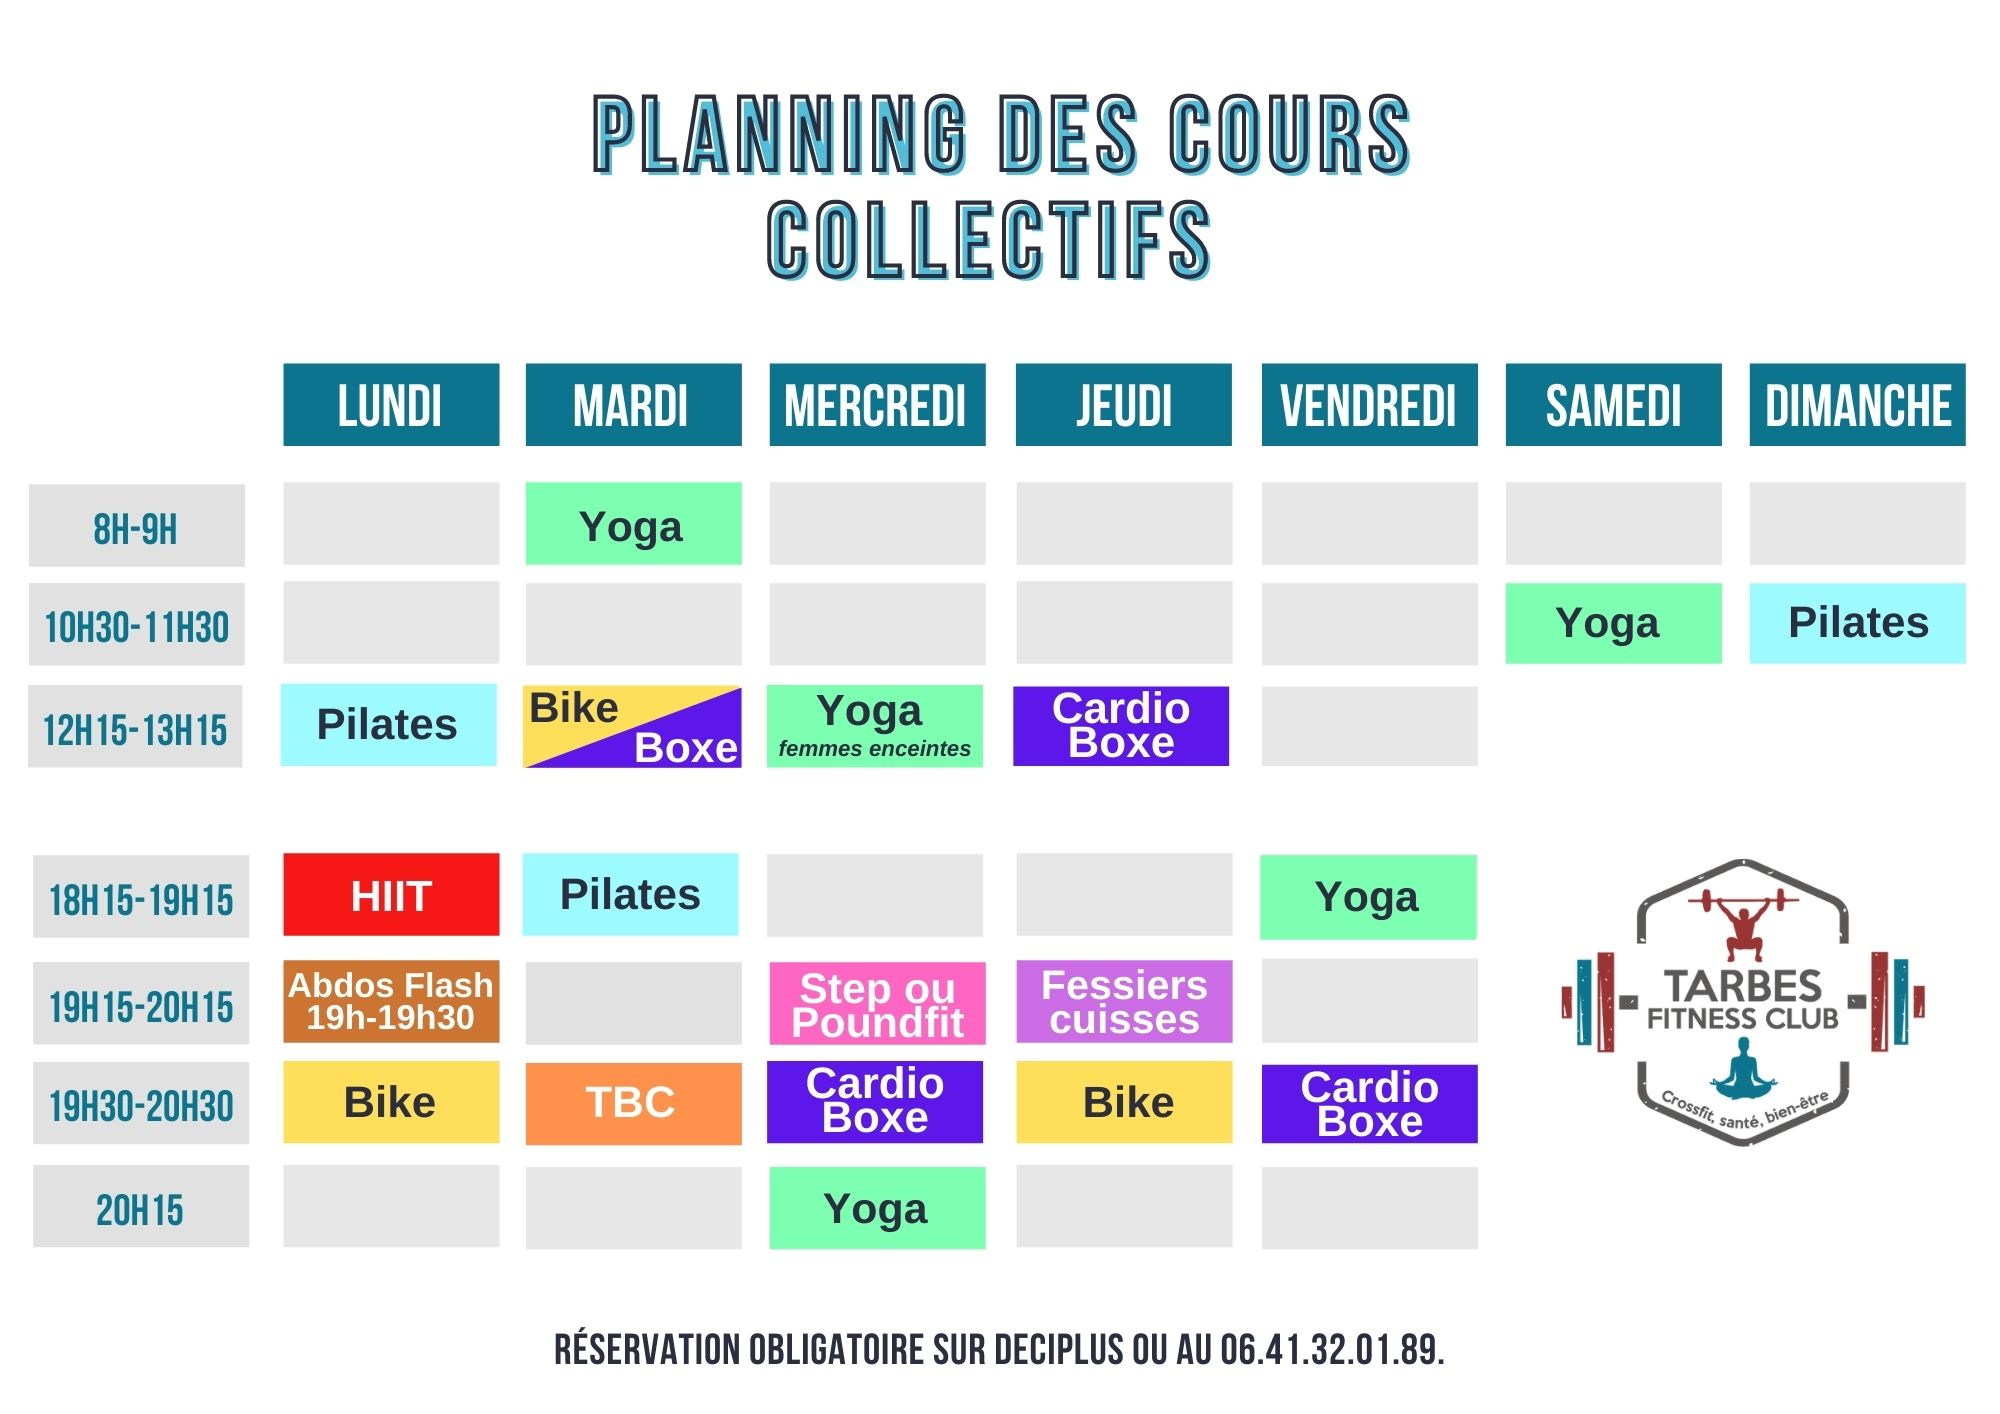 Planning cours collectifs Tarbes Fitness Club